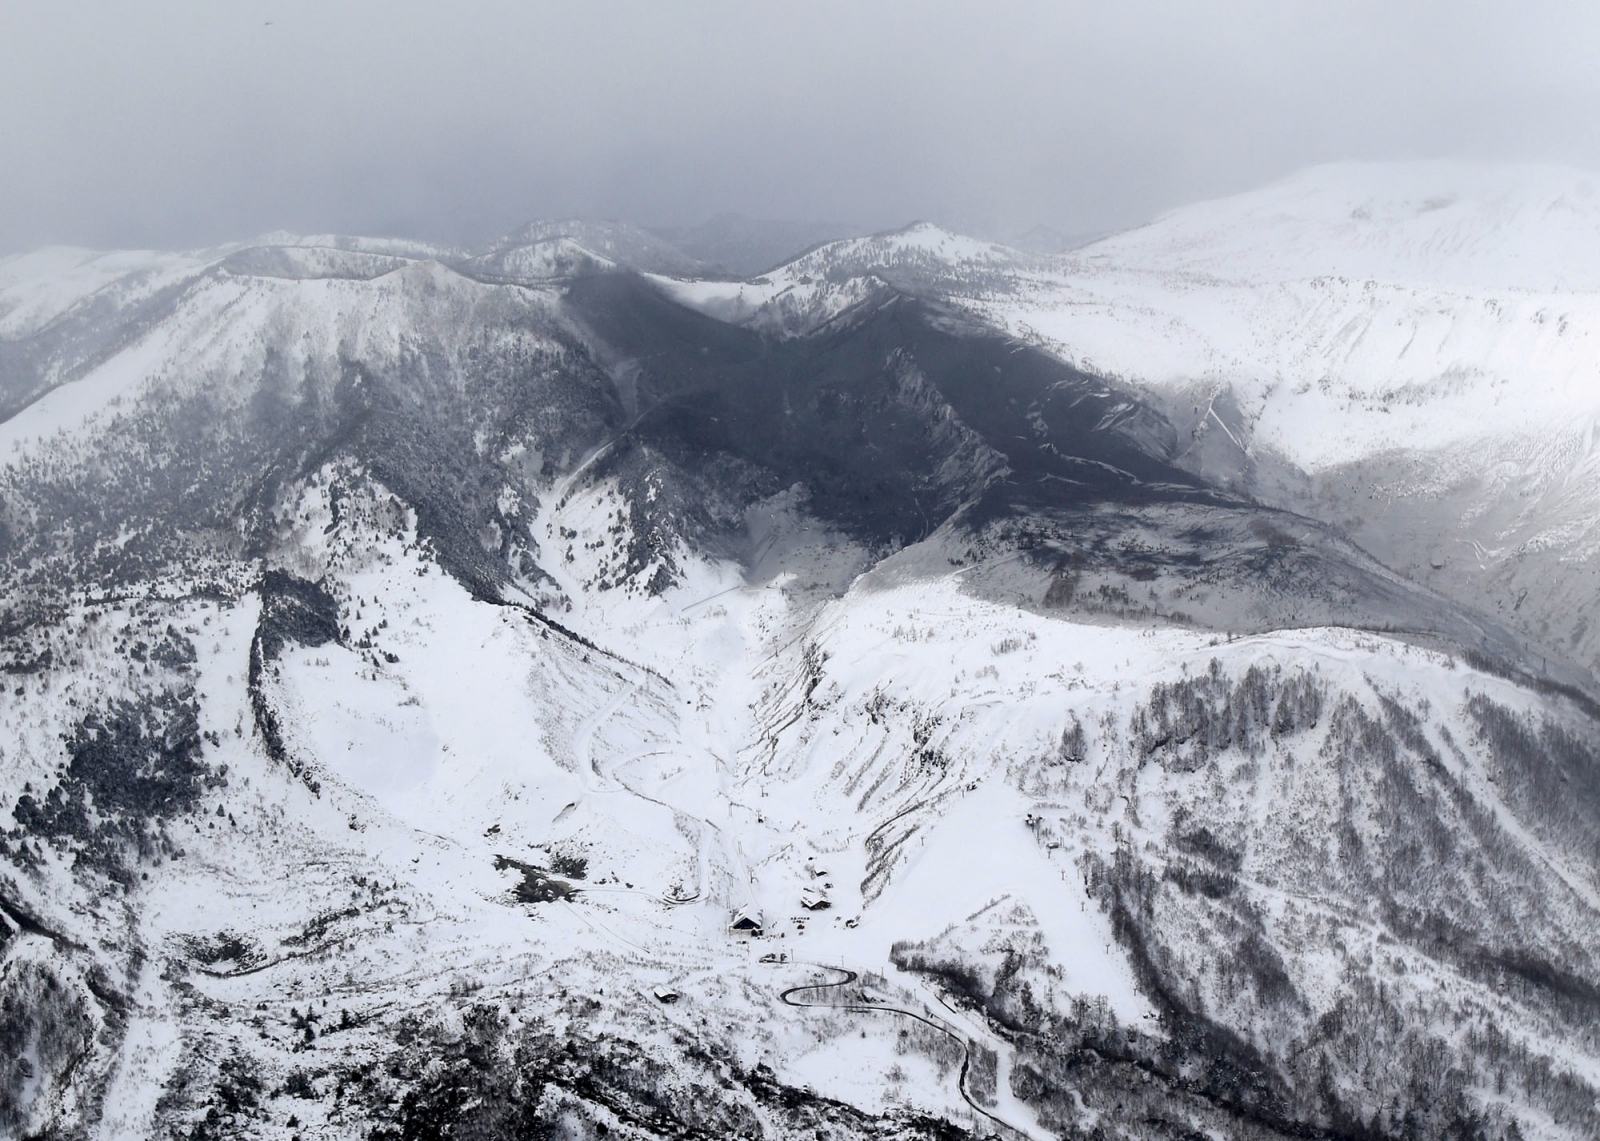 mount shirane volcano erupts in japan triggering avalanche as injuries feared